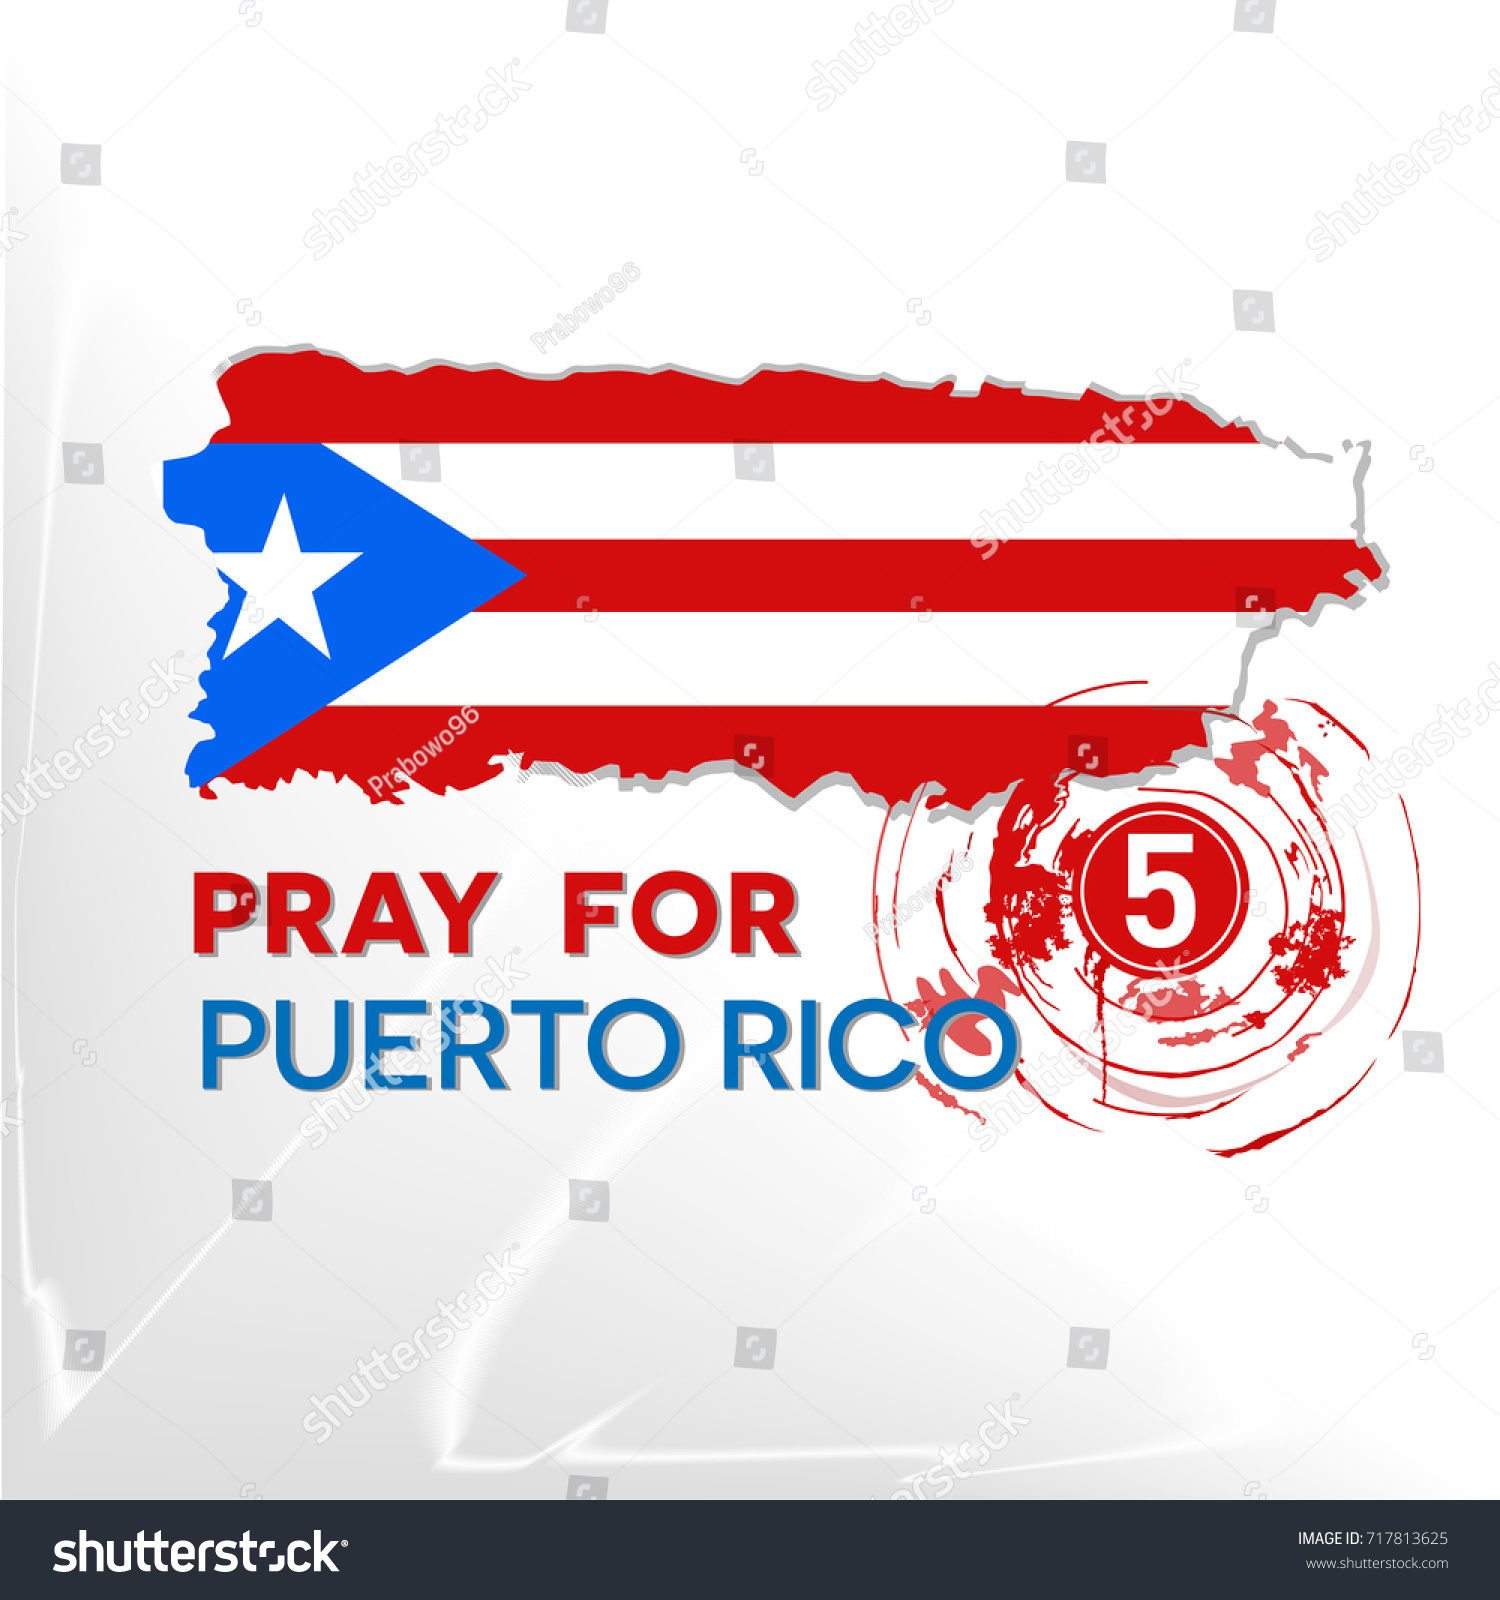 Pray puerto rico symbol humanity storm stock vector 717813625 pray for puerto rico the symbol of humanity for storm natural disaster in puerto rico biocorpaavc Choice Image